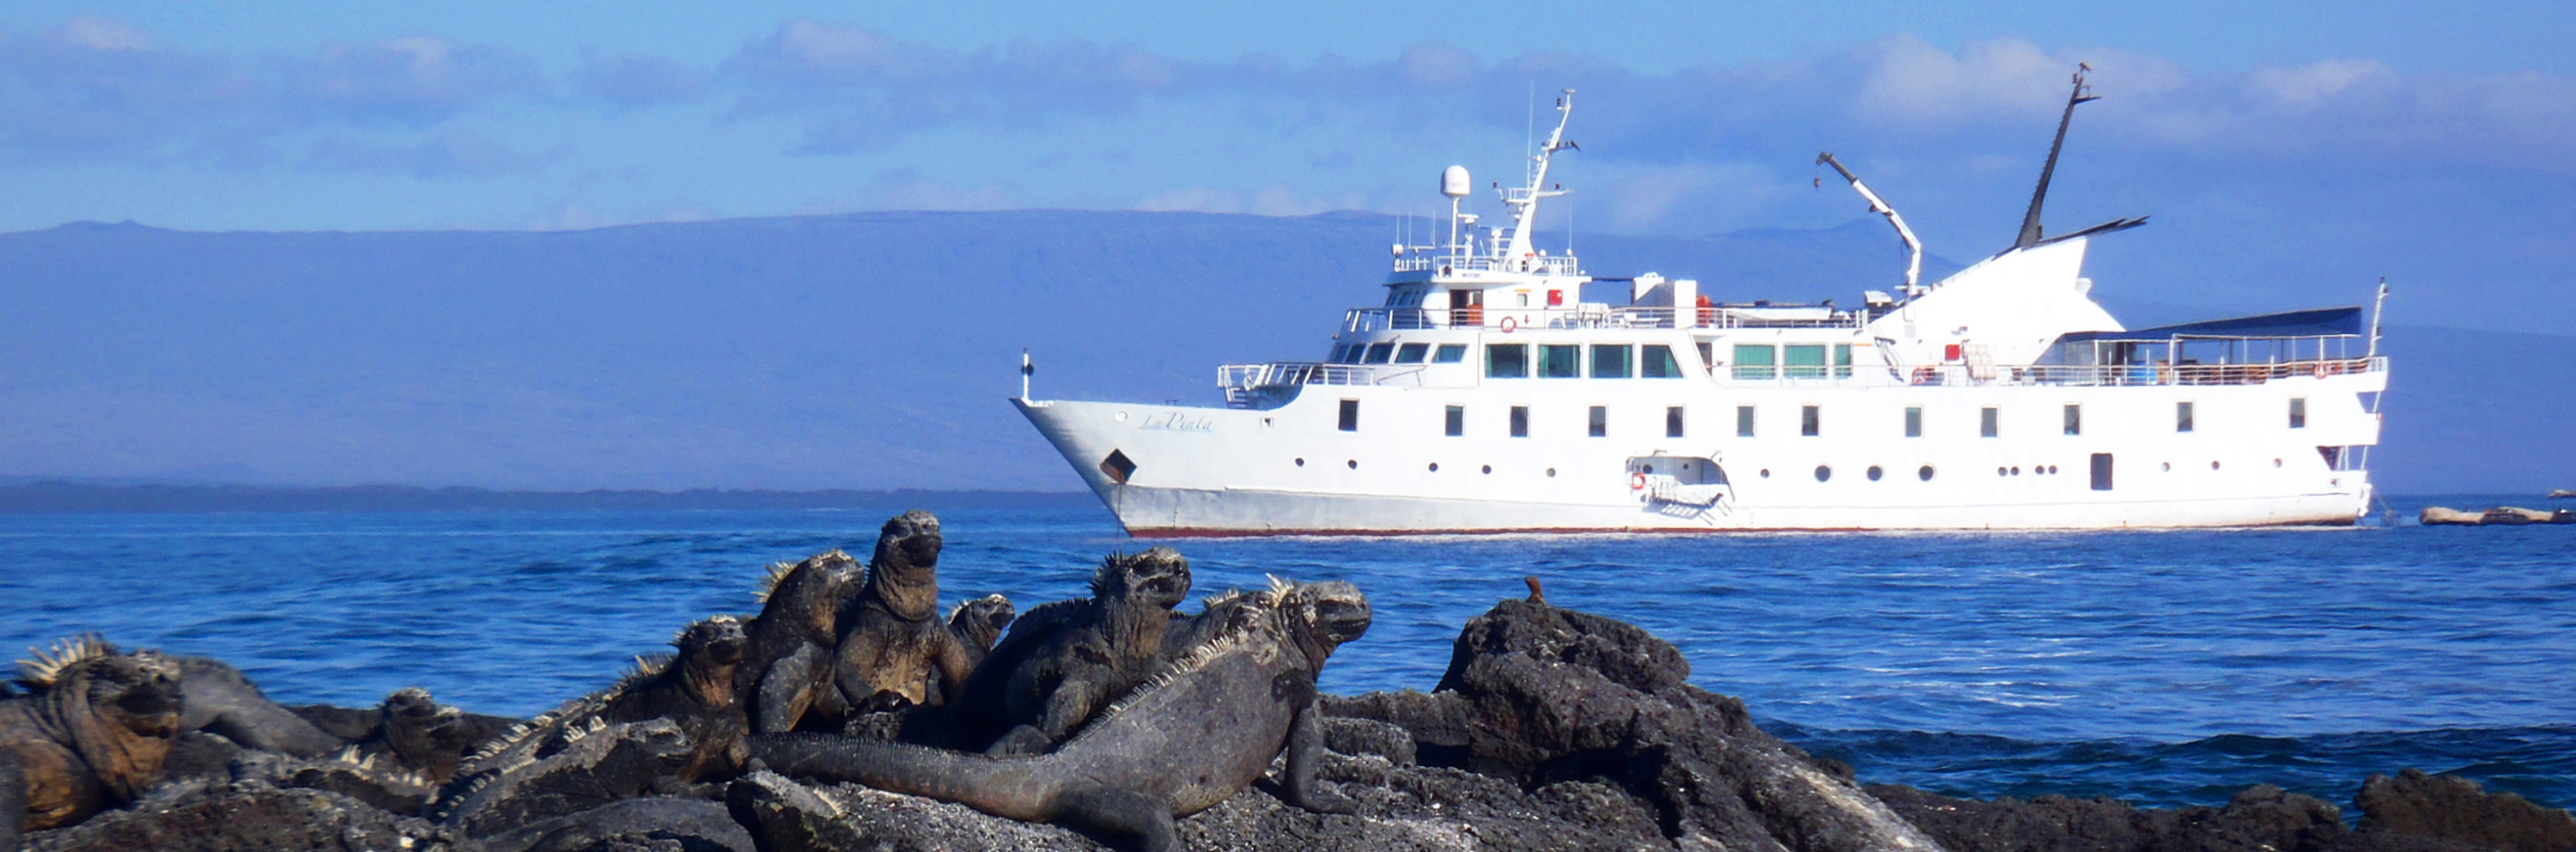 The Galapagos Islands aboard Yacht La Pinta - Activities - Wildlife - Islands